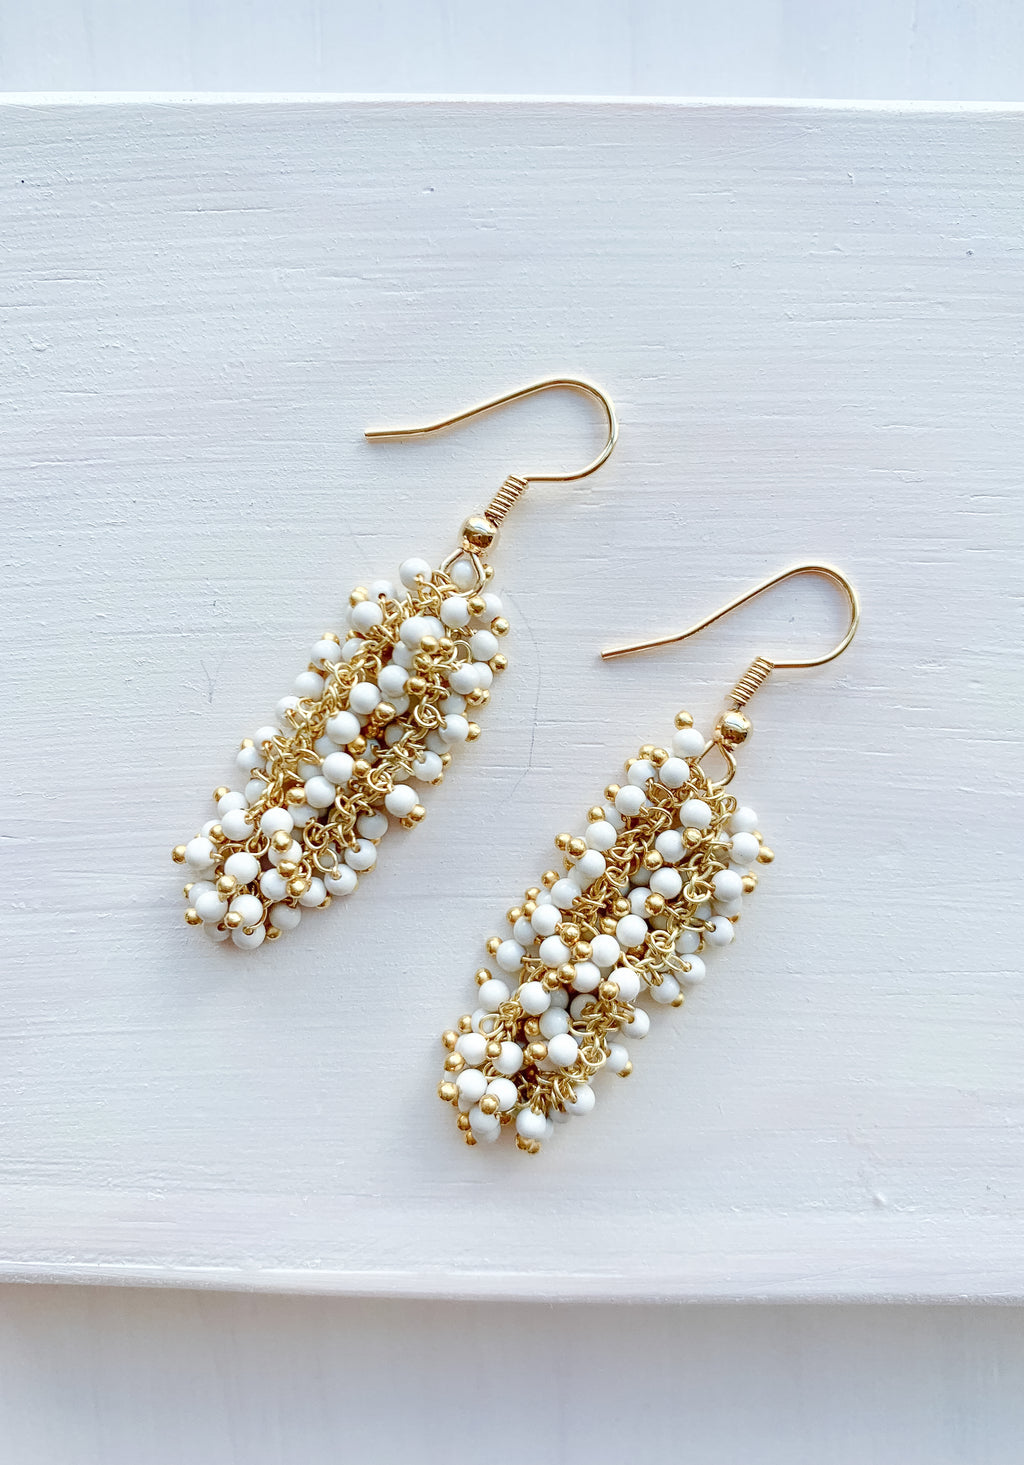 White Coral Dangle Earrings 14k